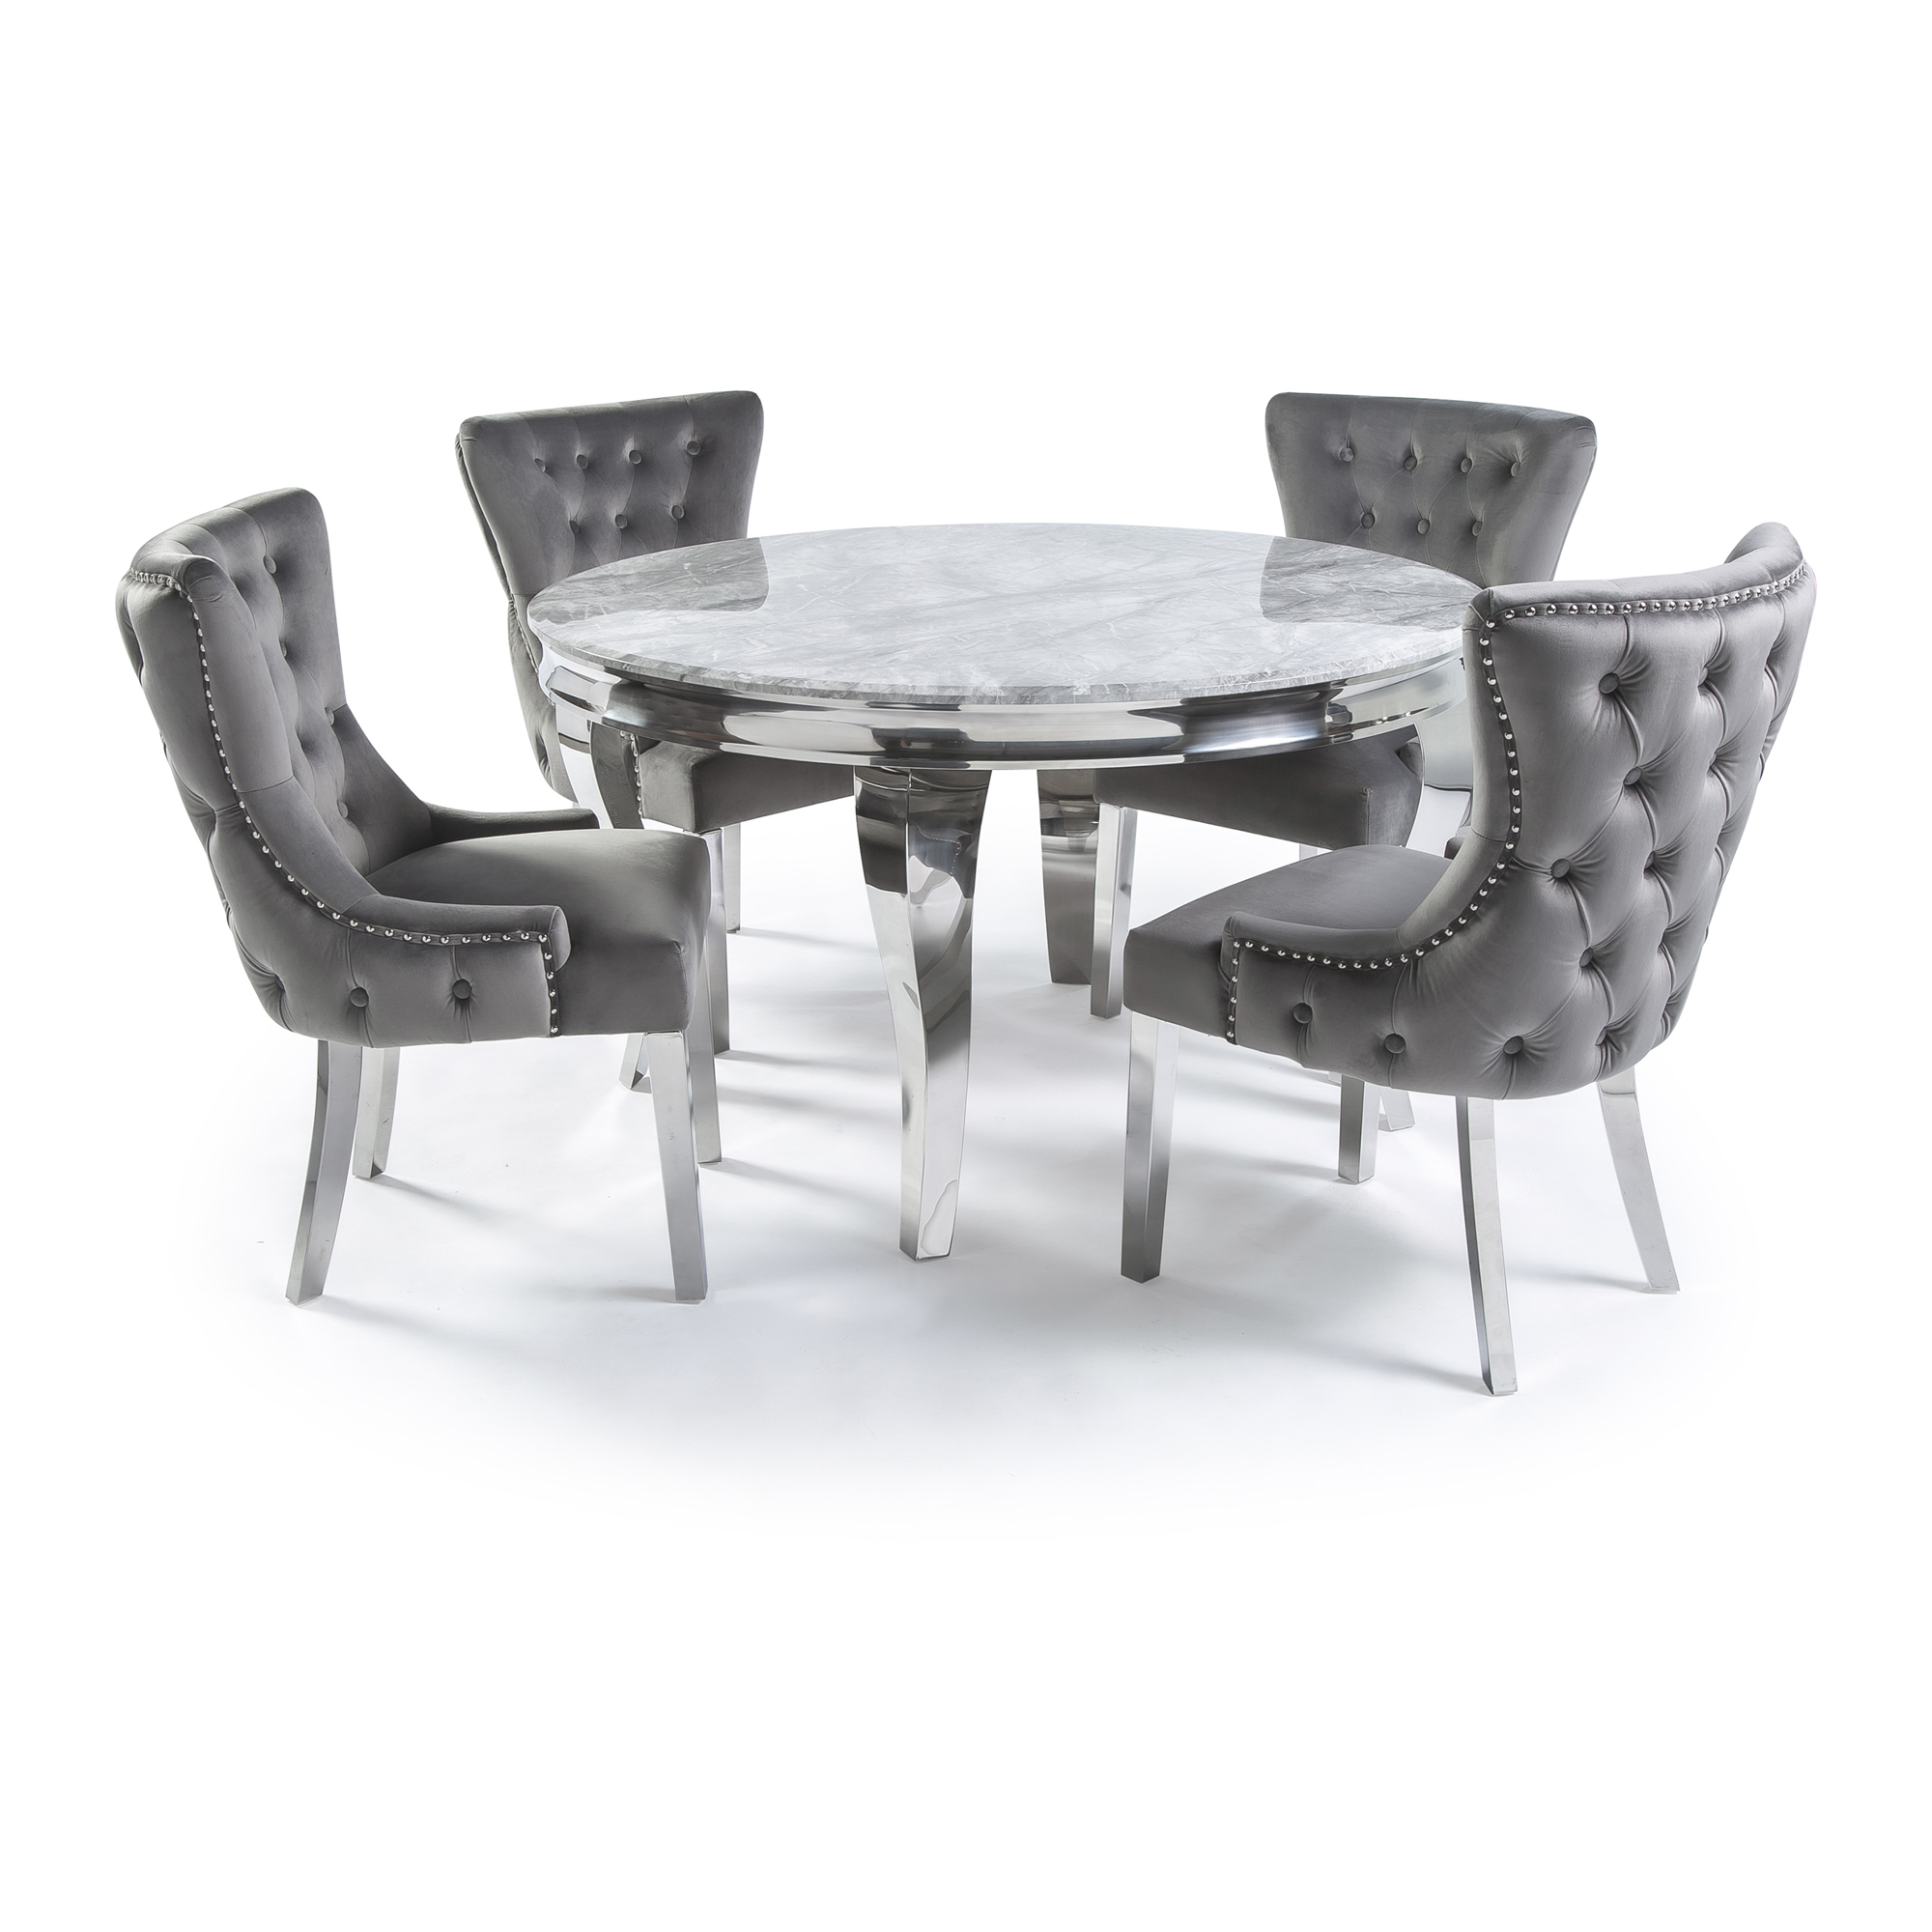 1 3m Polished Steel Round Grey Marble Dining Table Set X 4 Grey Velvet Chairs Grosvenor Furniture